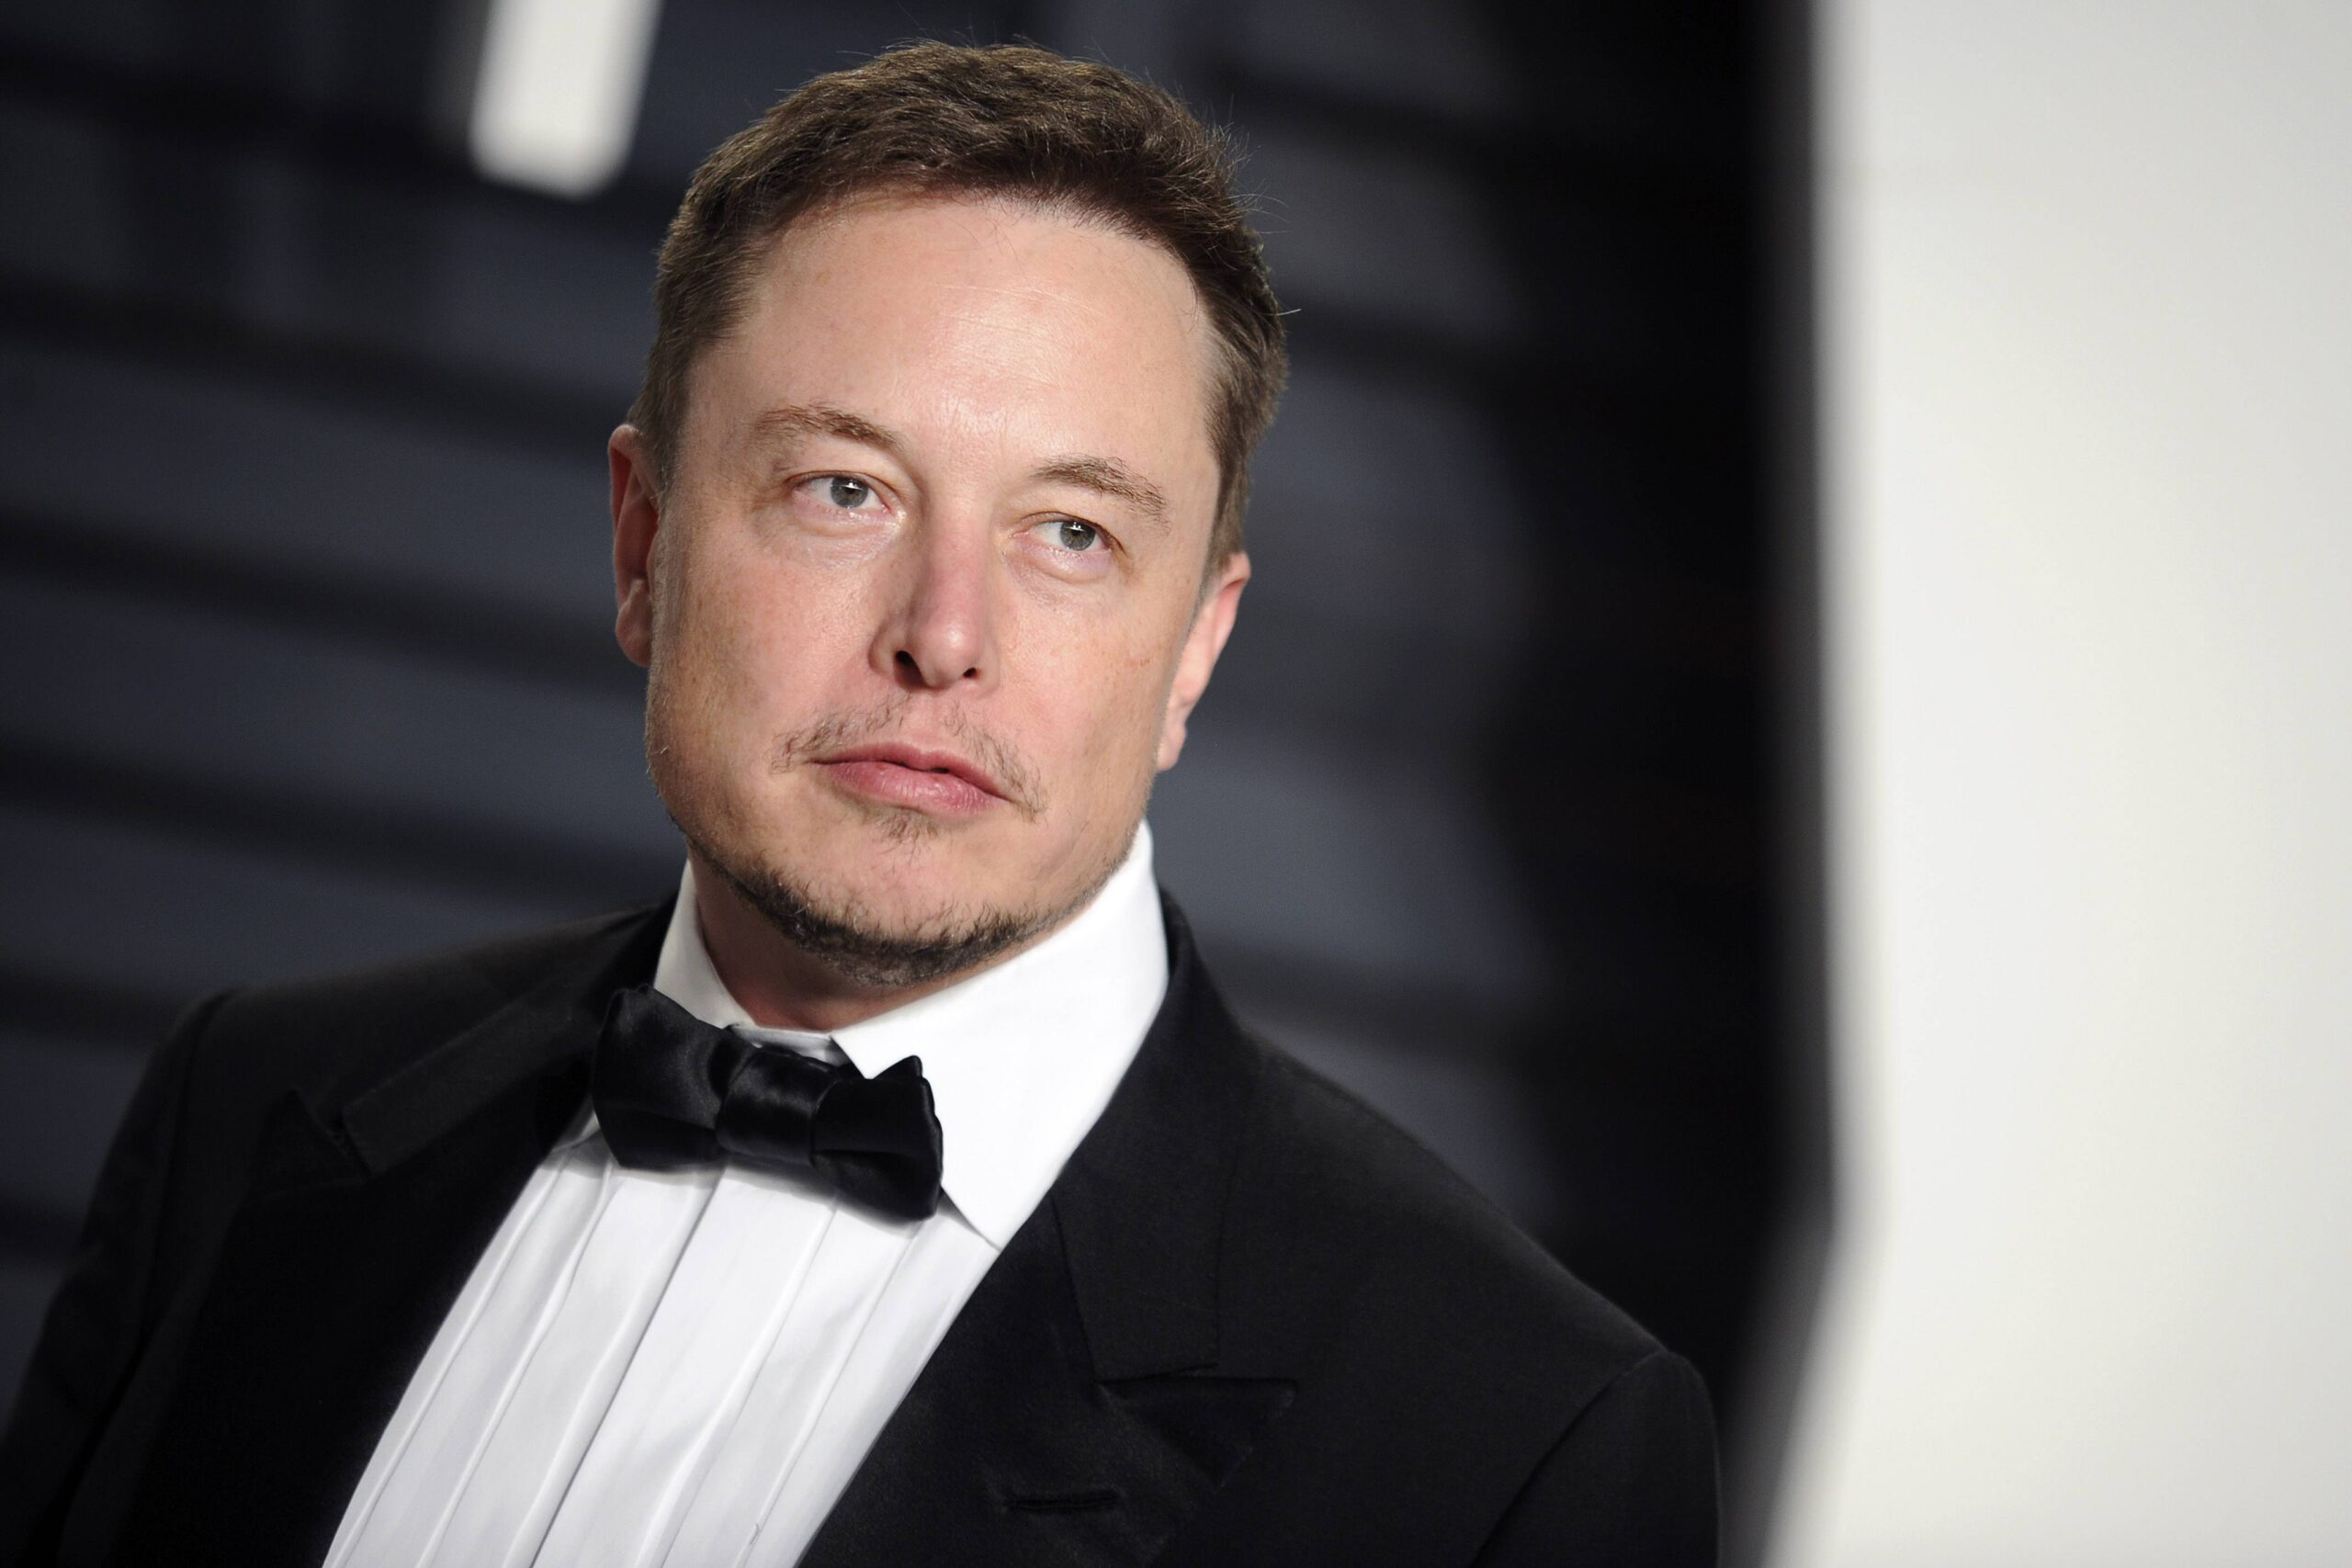 Tesla CEO Elon Musk climbed from 31st to second place